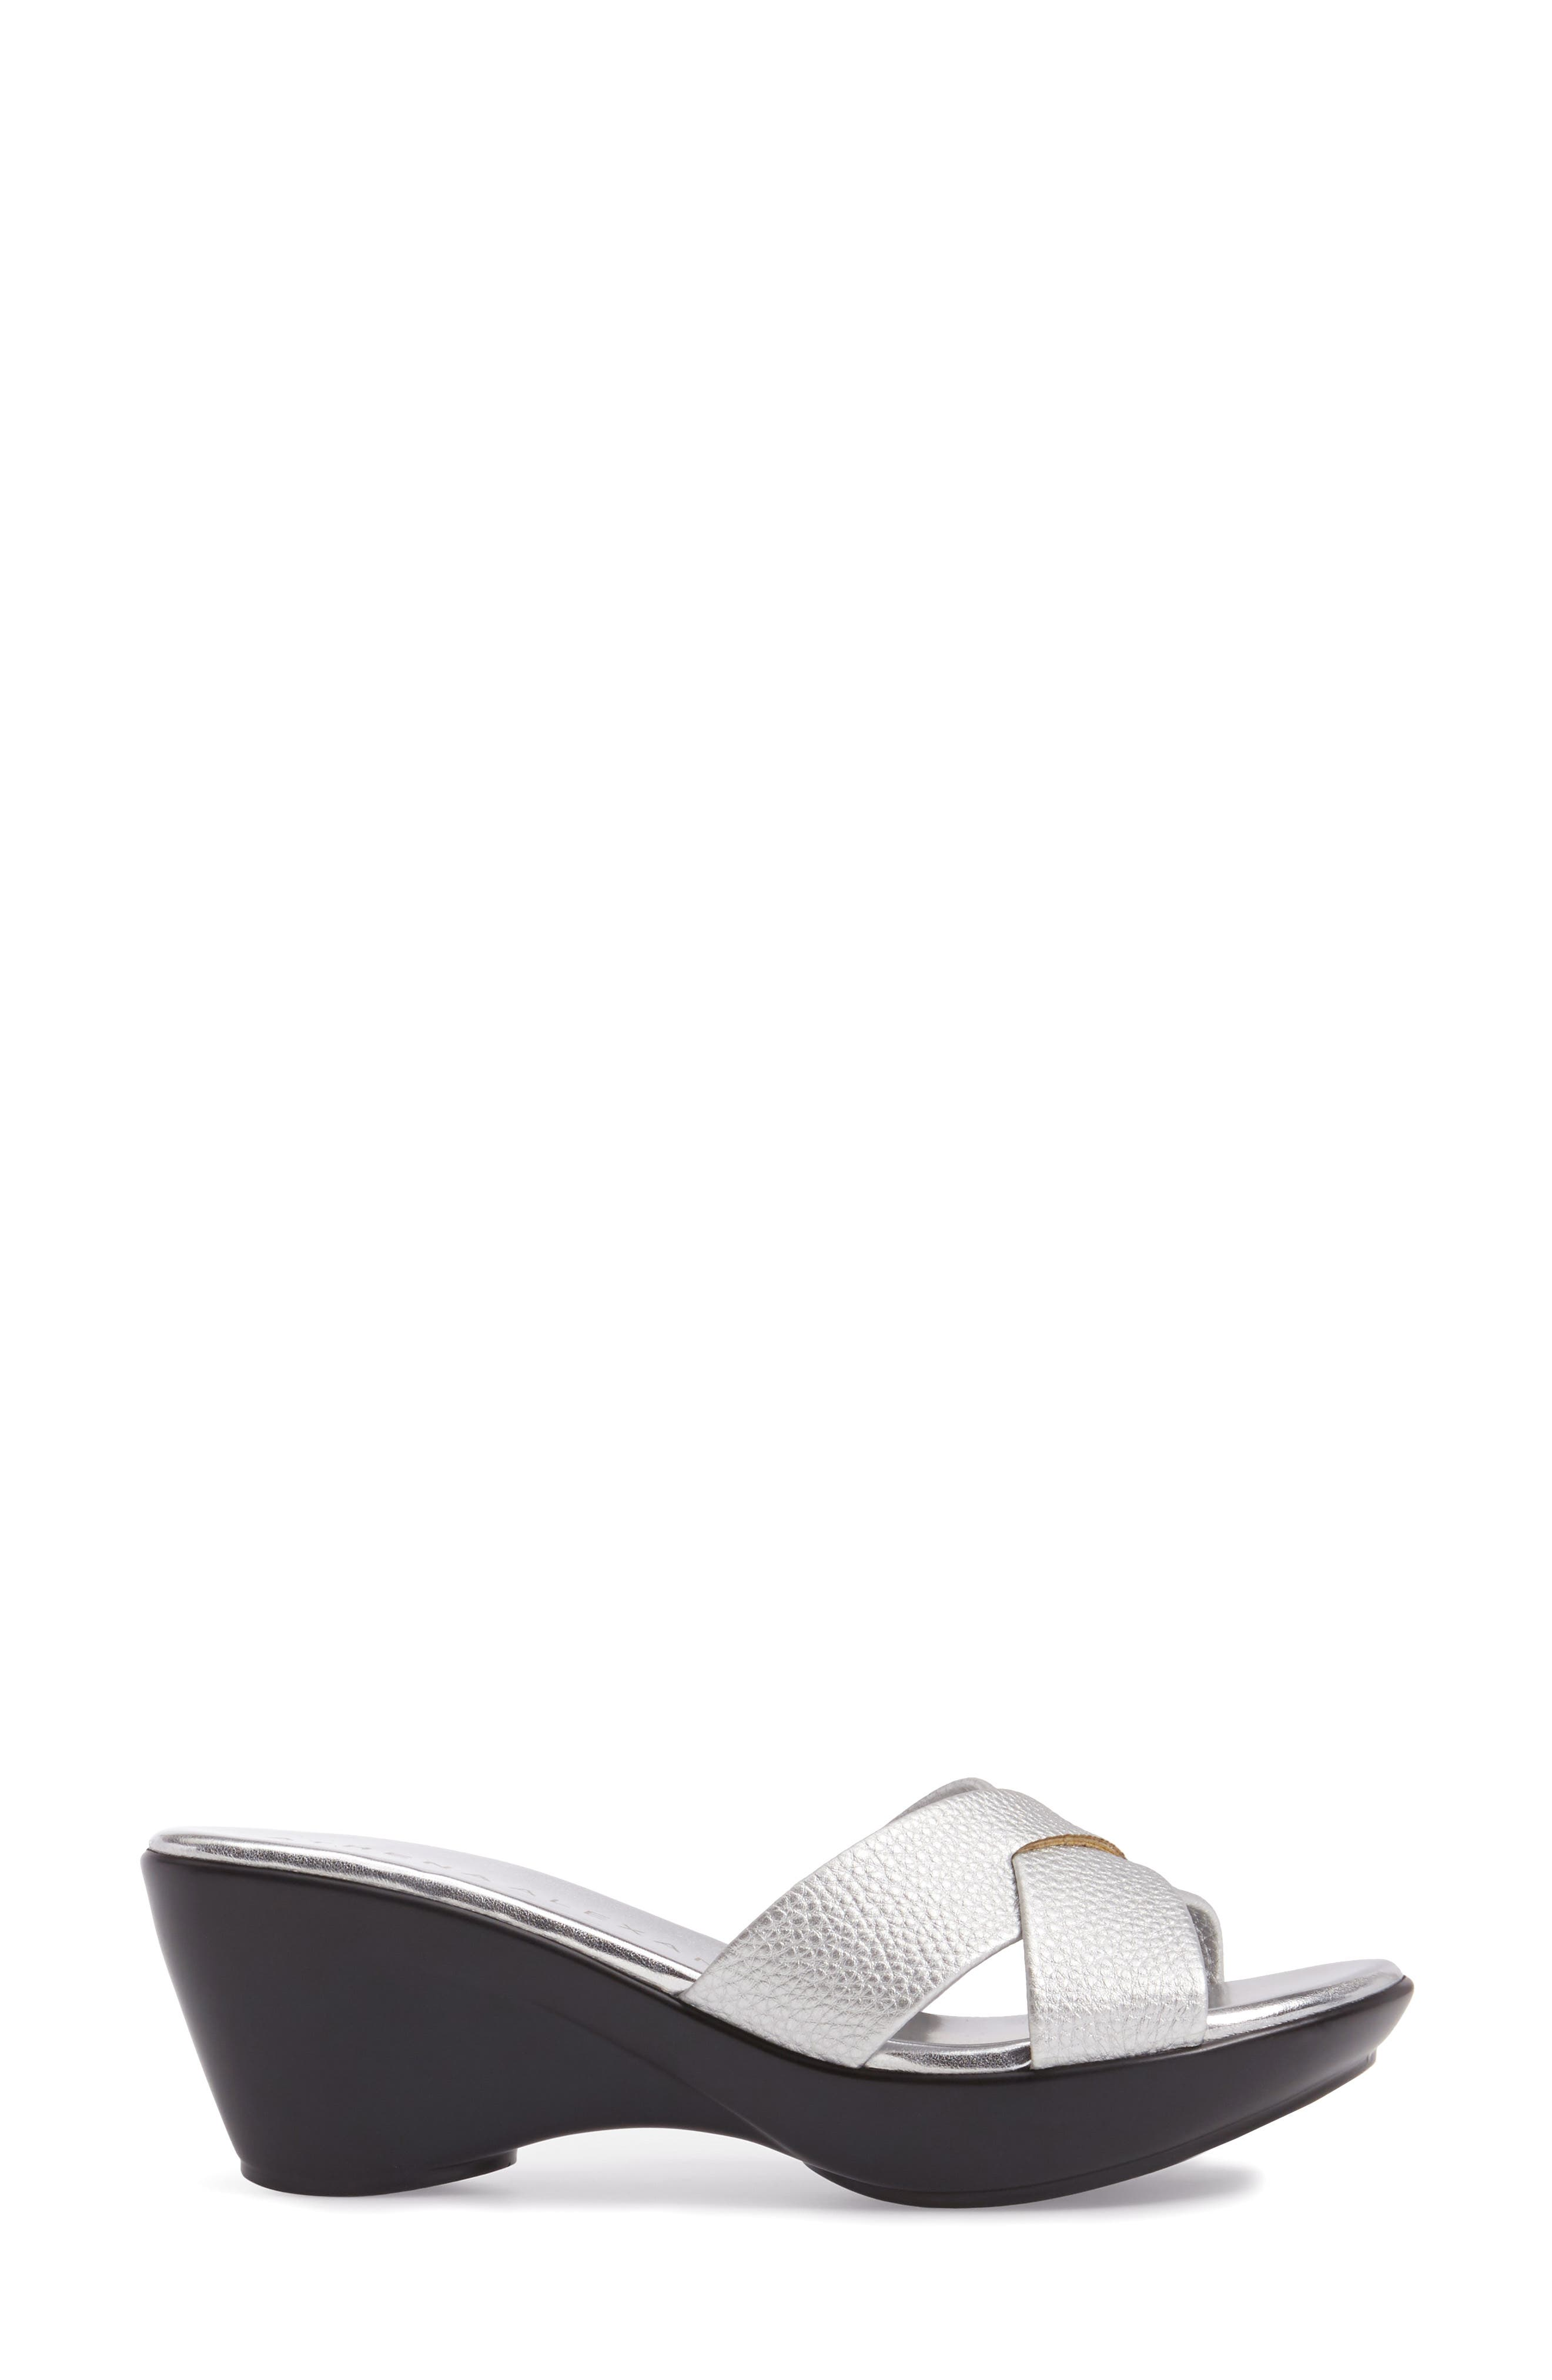 Verna Wedge Slide Sandal,                             Alternate thumbnail 3, color,                             SILVER FAUX LEATHER